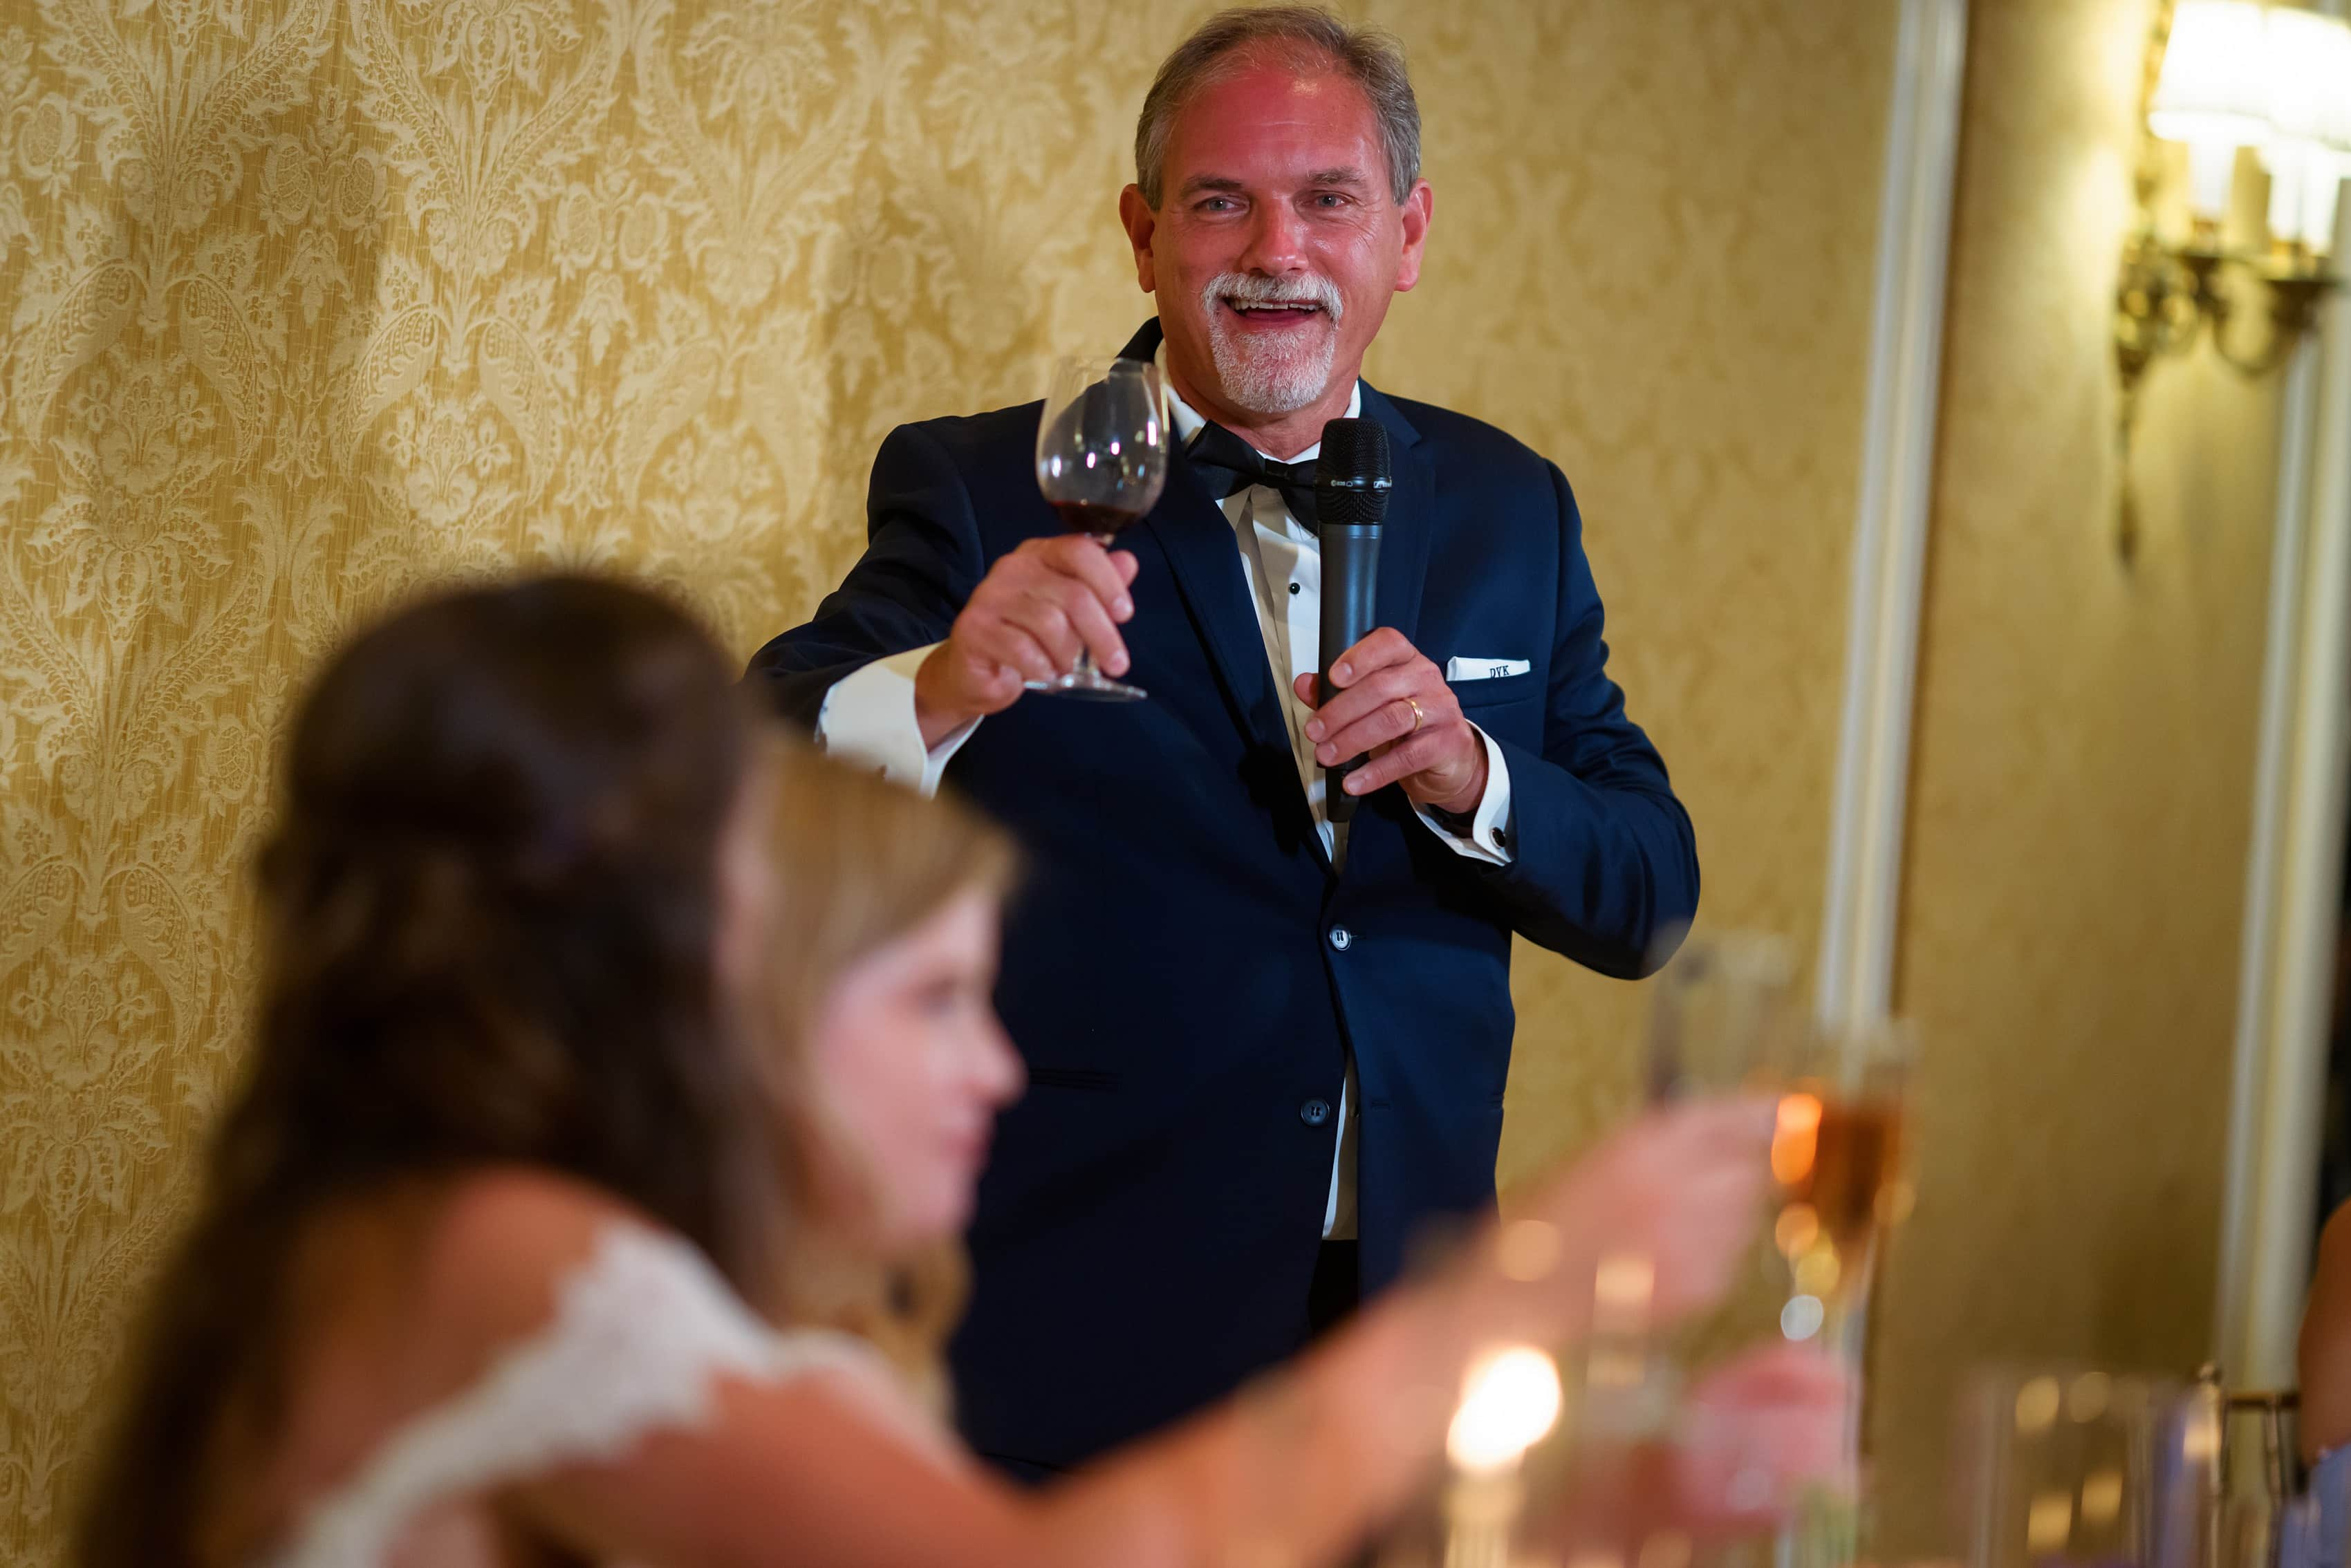 father of the bride gives toast during wedding reception